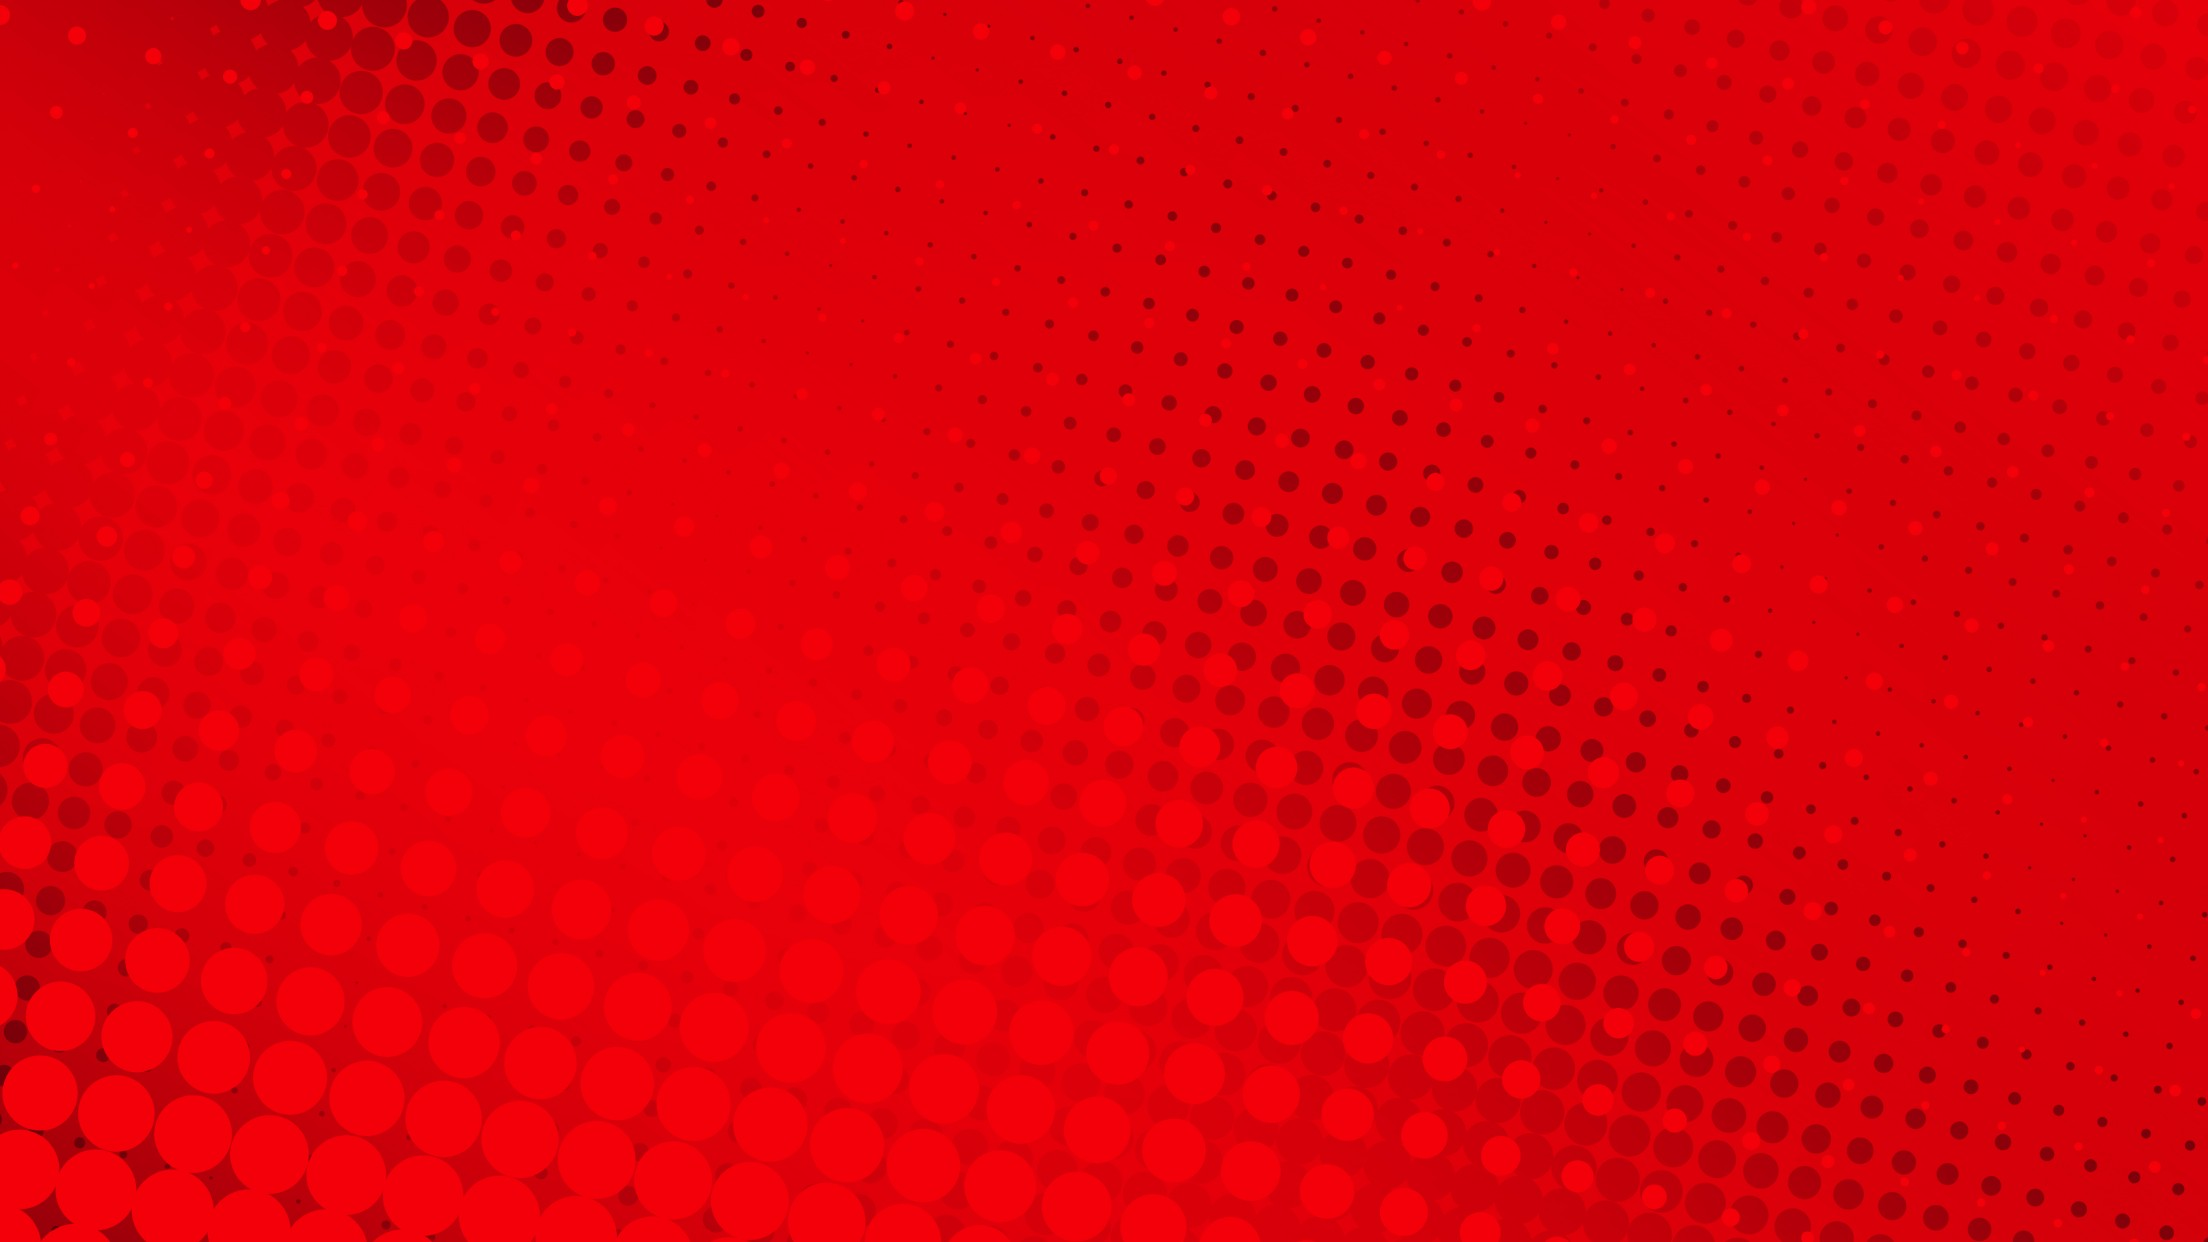 Black Cars Wallpapers For Android Mobile Hd Red Halftone Background Hd Wallpapers Hd Backgrounds